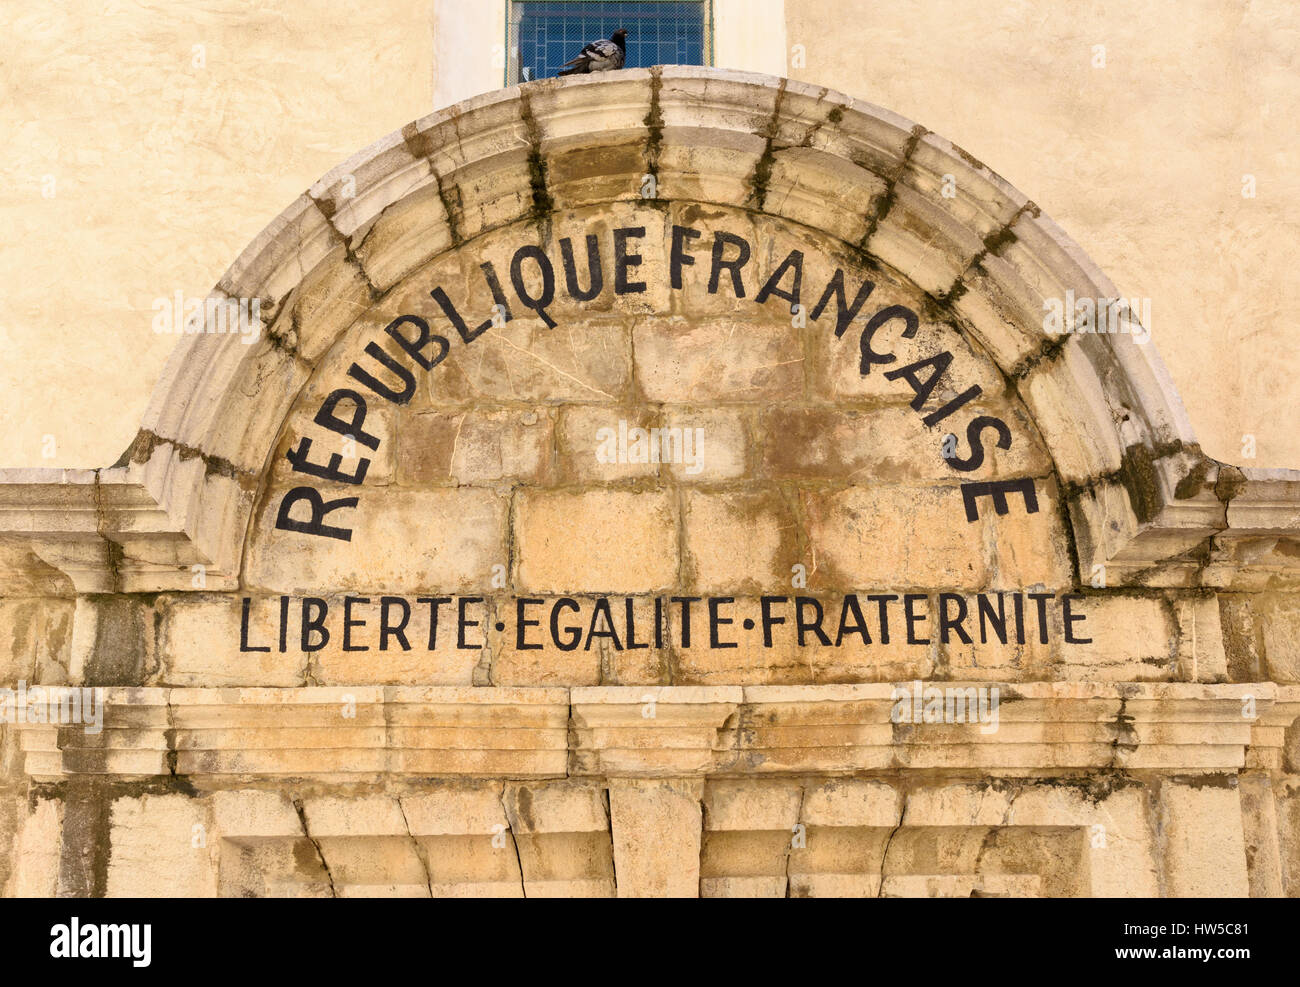 French motto of liberté, égalité, fraternité on a tympanum over the entrance to the Notre Dame - Stock Image